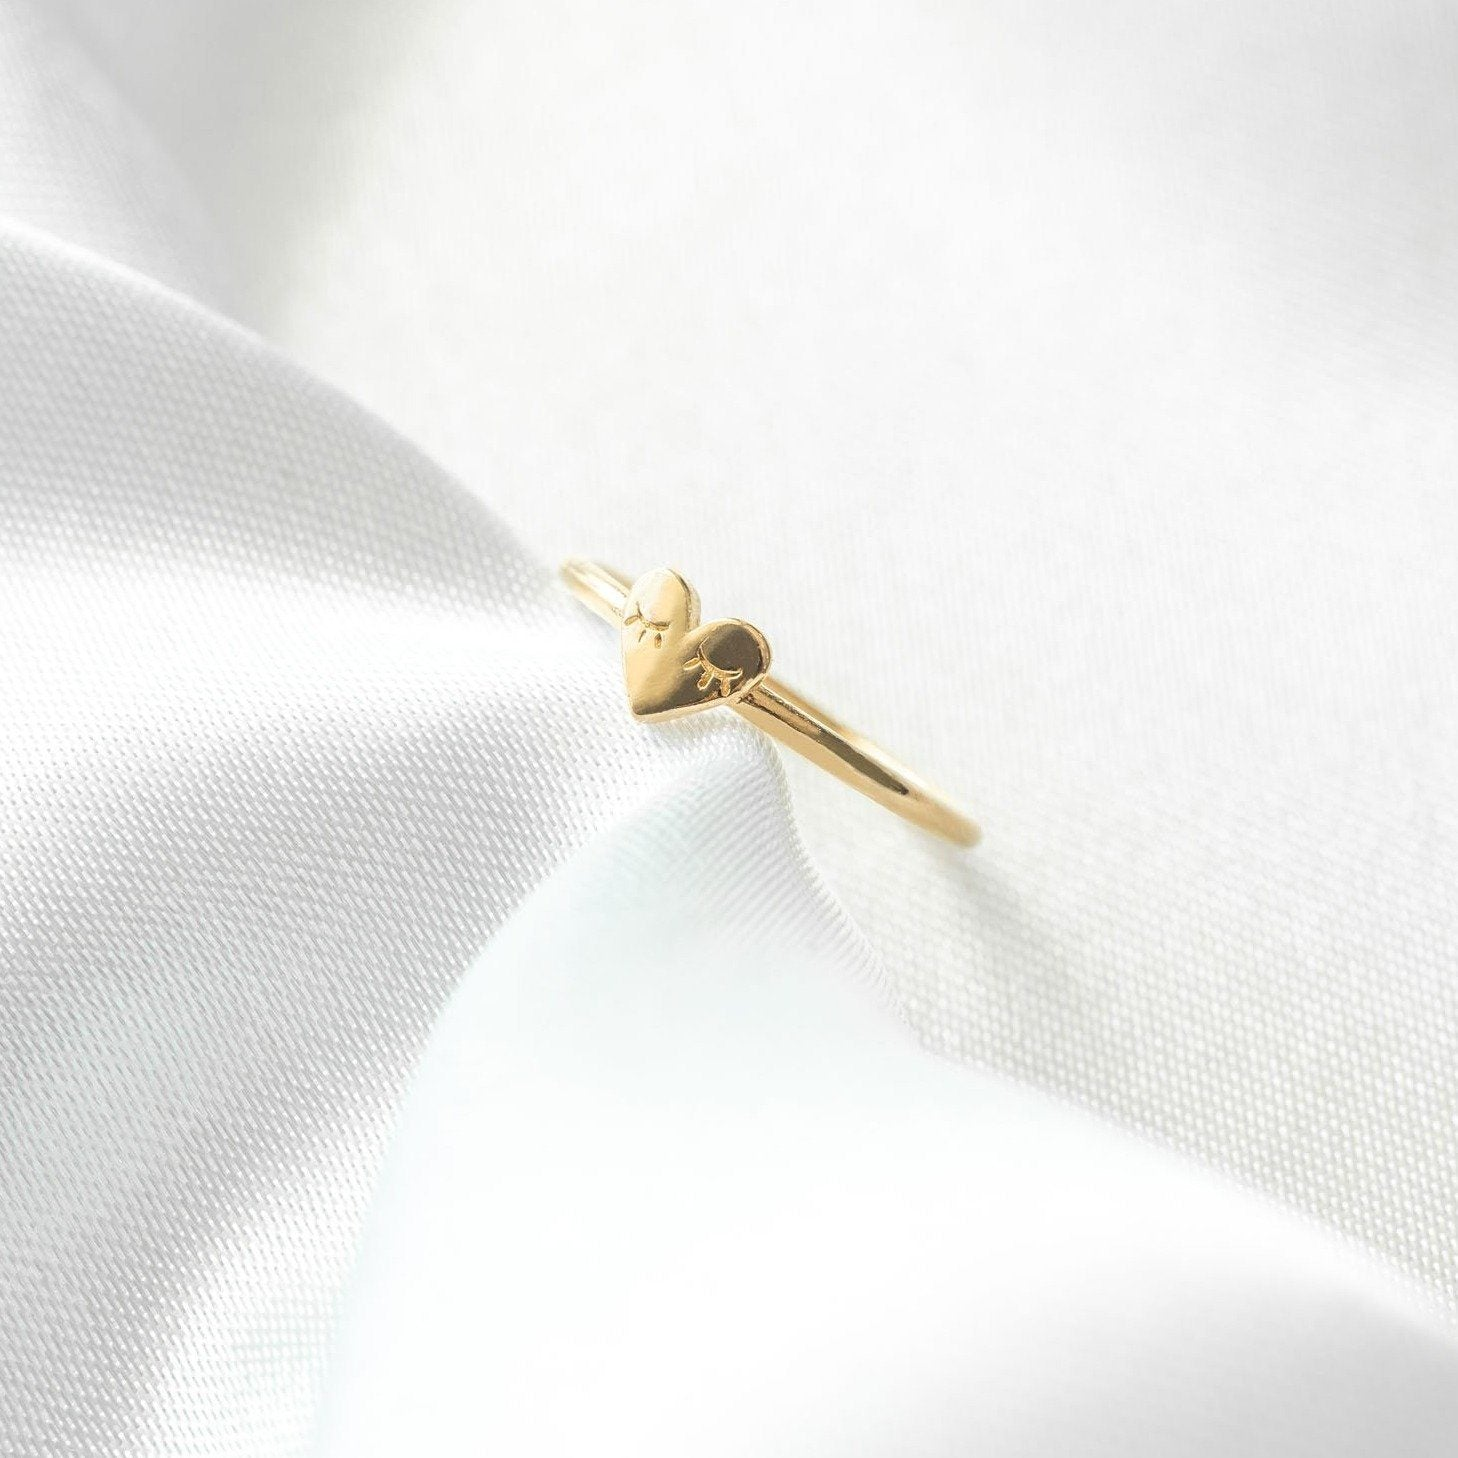 Dainty gold heart ring with eyelashes on the heart, sitting on a white piece of satin.